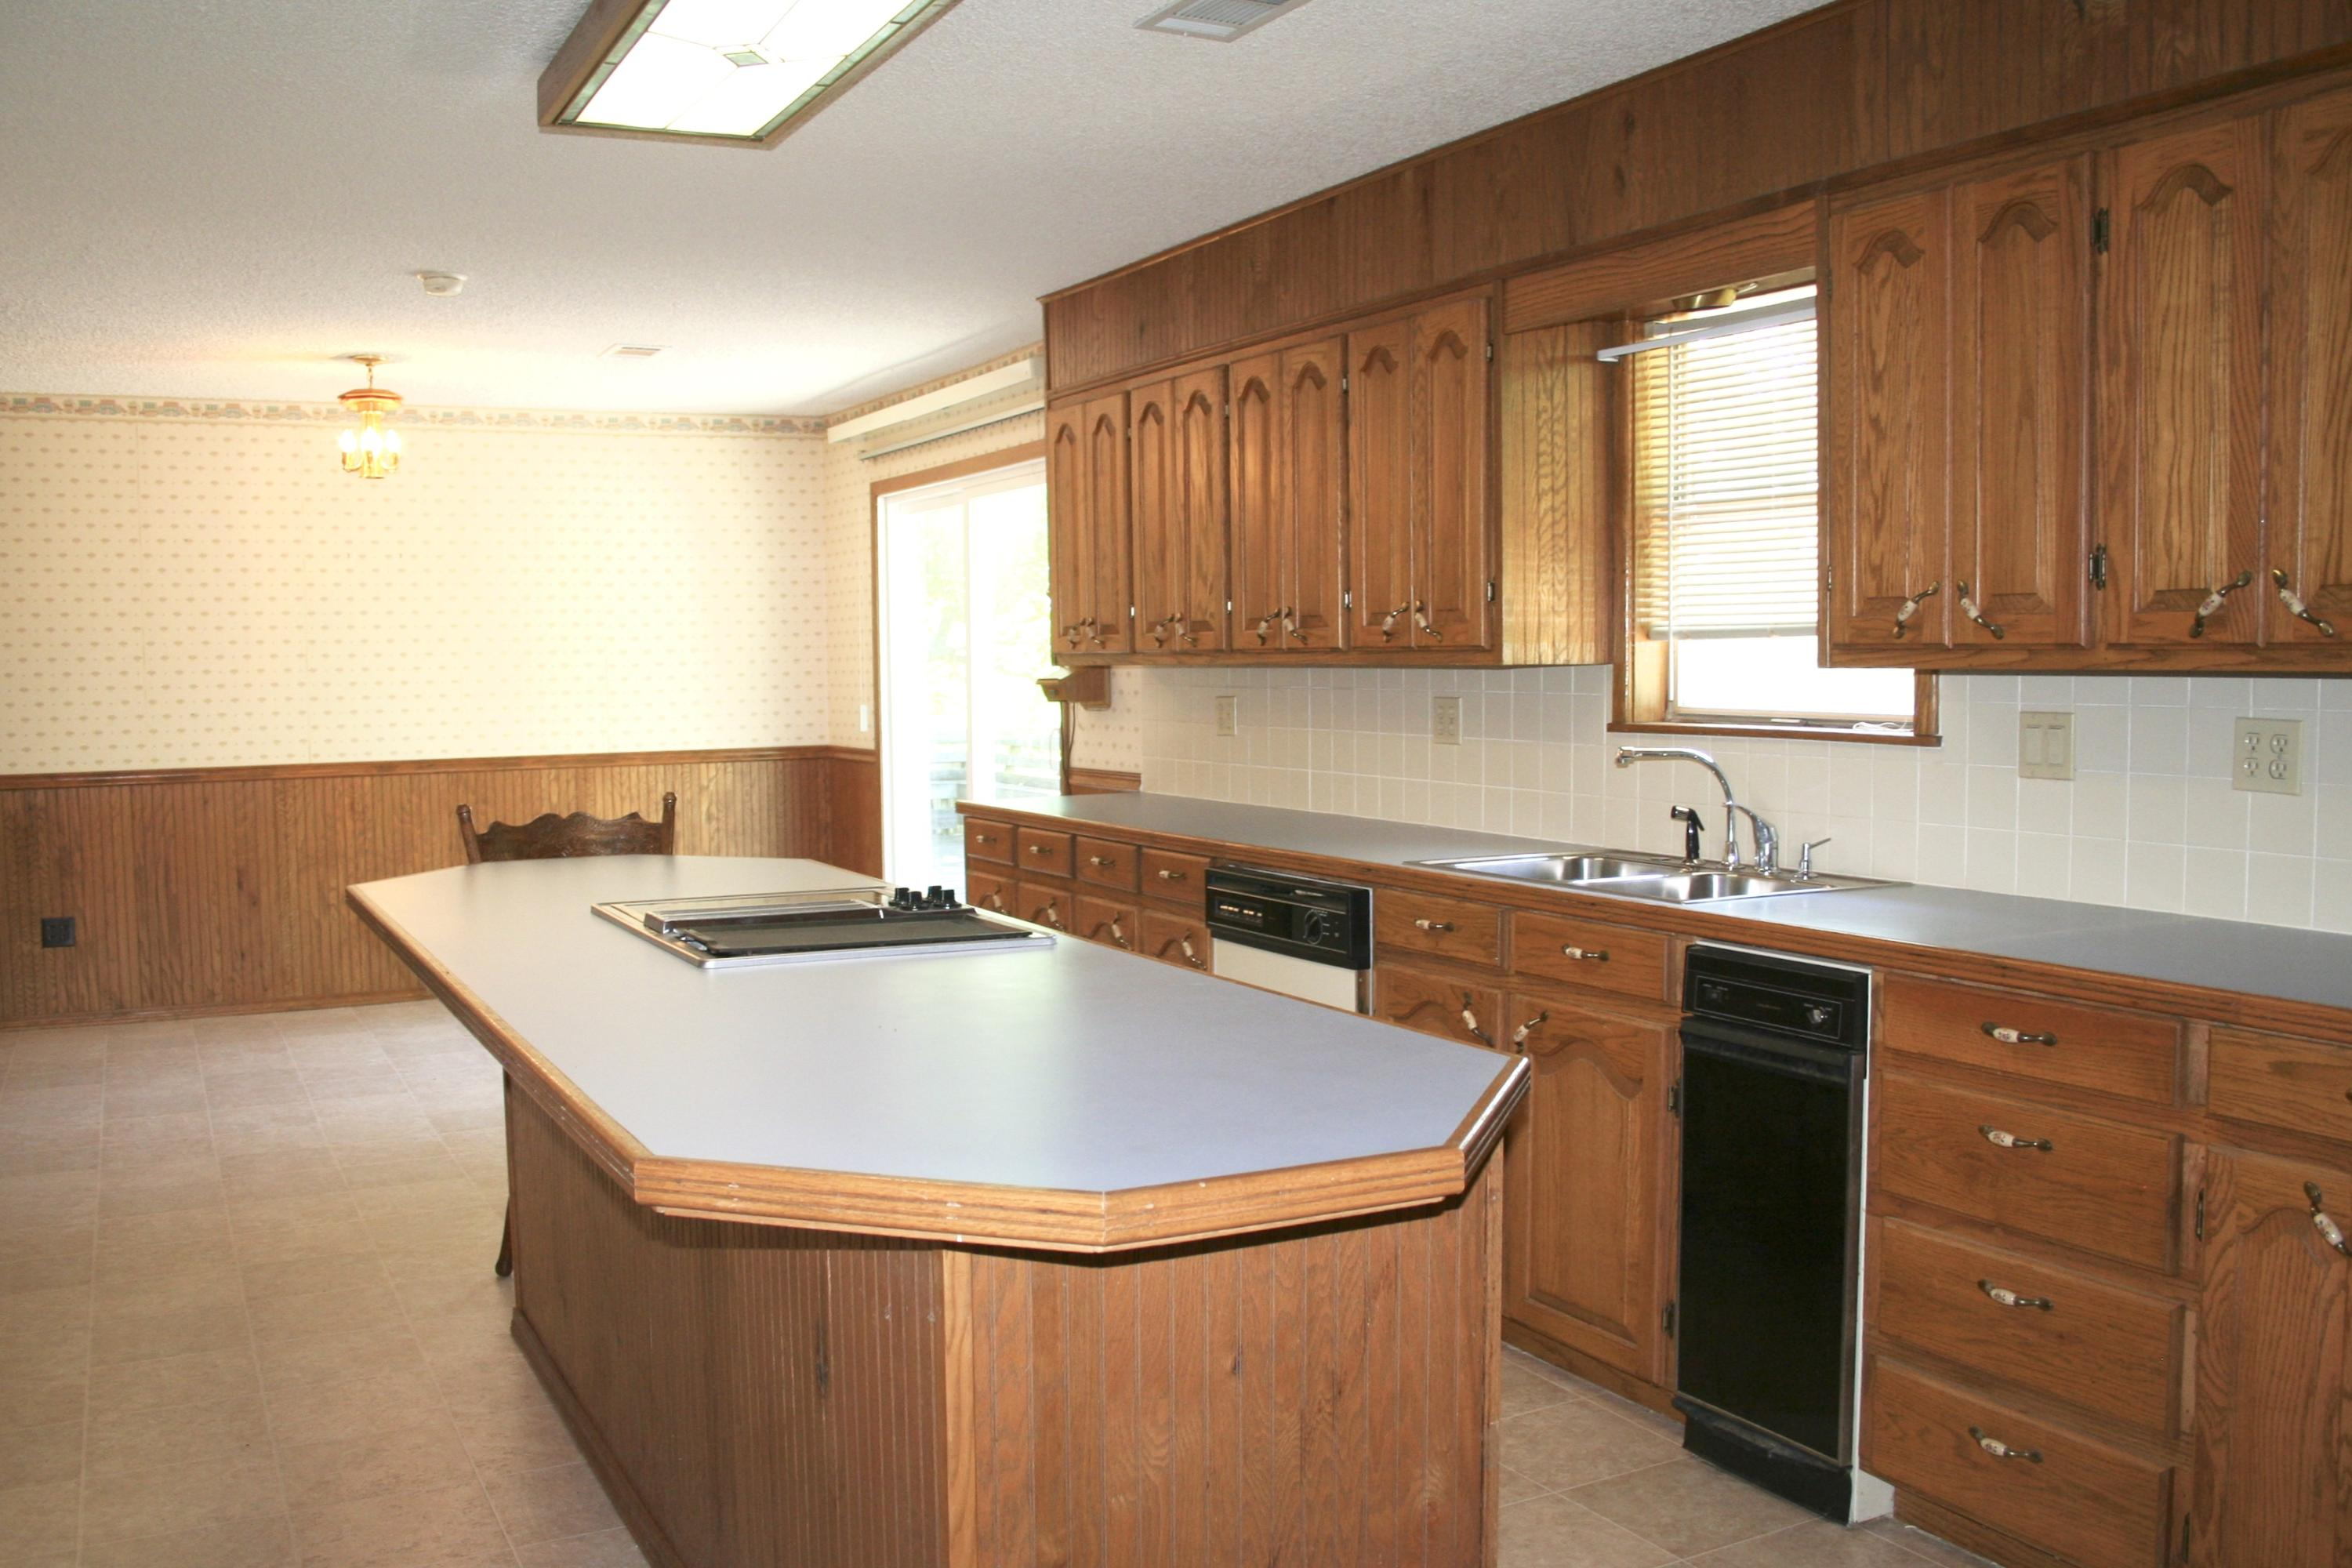 Main photo 12 of sold home in Belleville at 13373  Spring Creek Road, Belleville, AR 72824